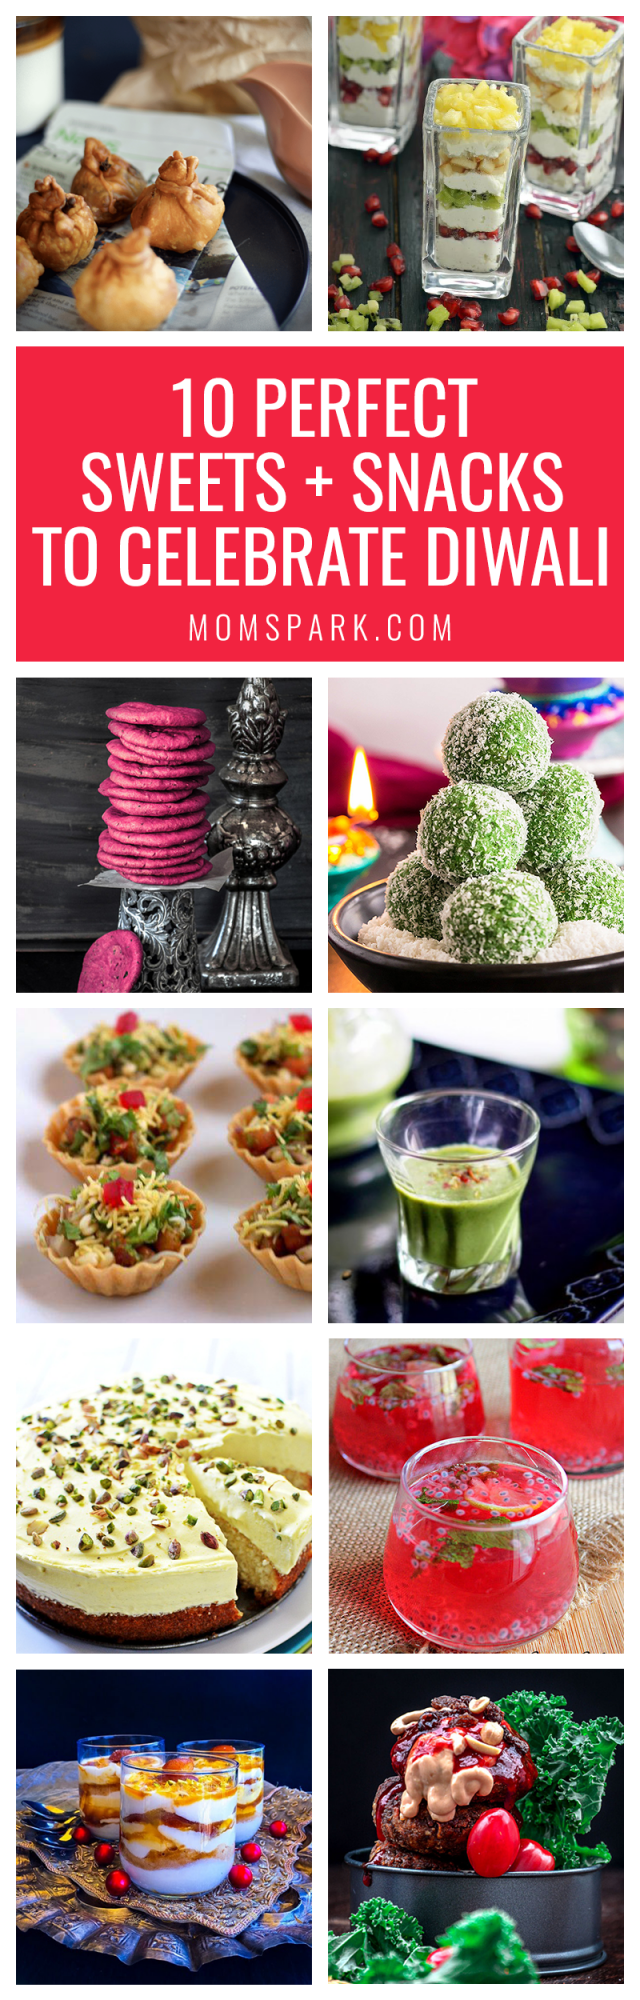 I've always been fascinated by other cultures and how they celebrate with food. These 10 perfect sweets and snacks recipes to celebrate #Diwali are amazing.